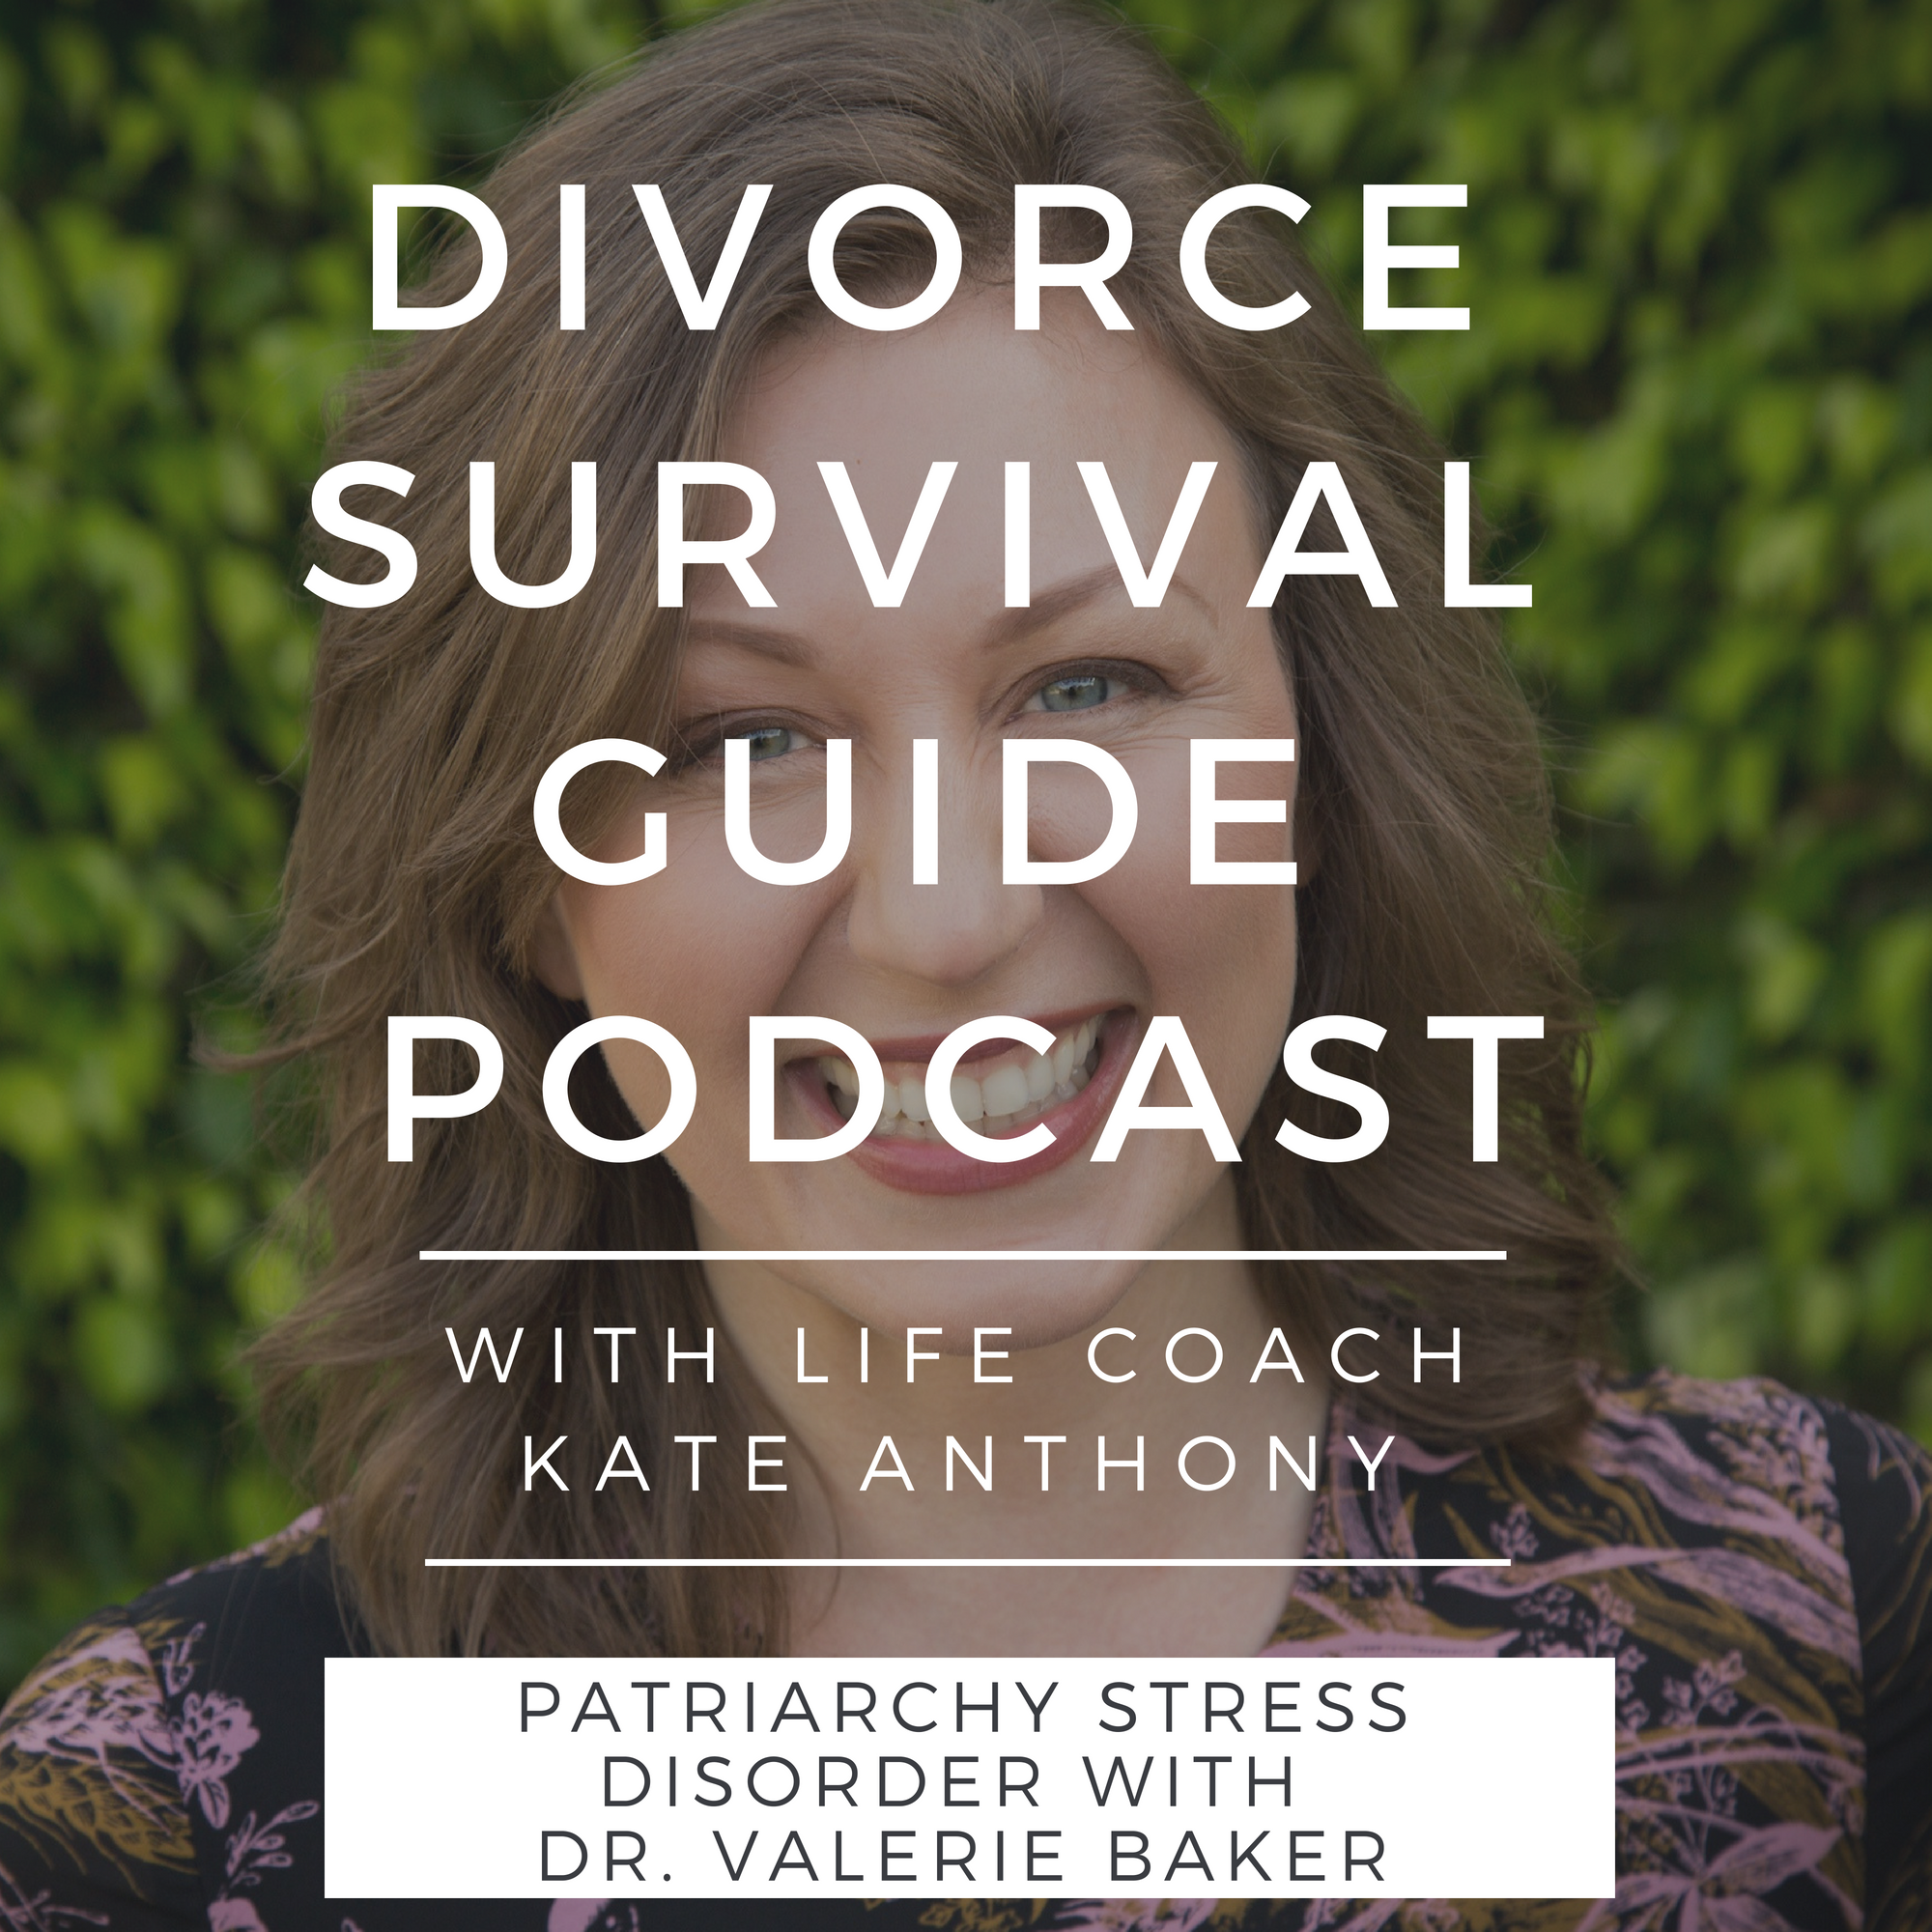 The Divorce Survival Guide Podcast - Patriarchy Stress Disorder with Dr. Valerie Baker